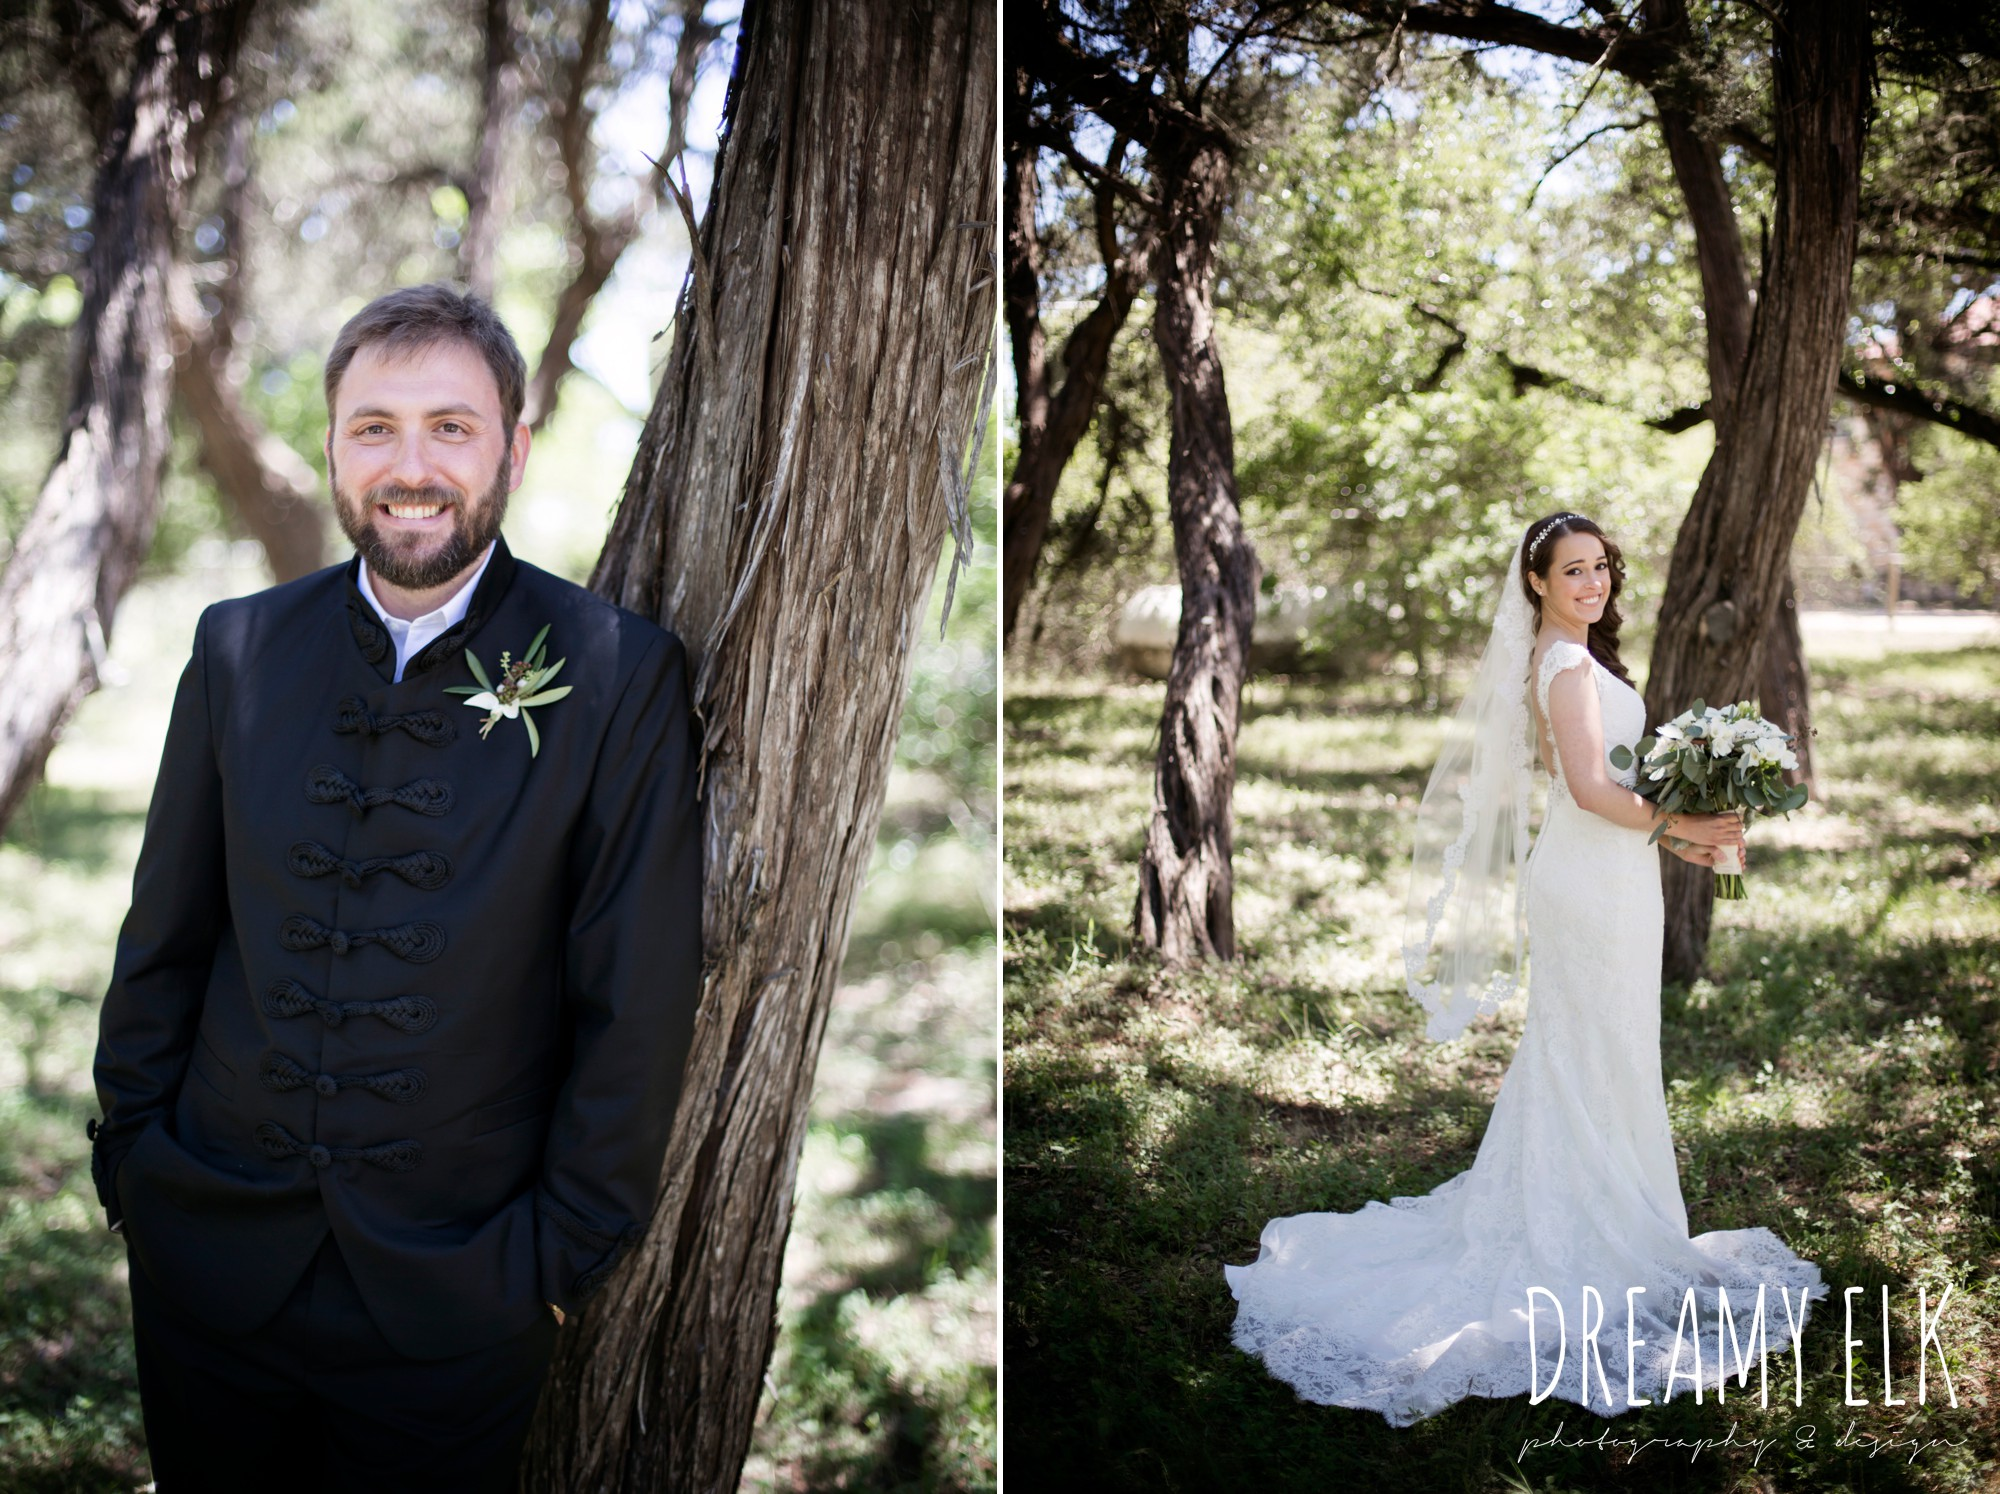 groom, traditional hungarian tux, bride, lace wedding dress, lace wedding veil, white wedding bouquet, outdoor spring april wedding photo, chapel dulcinea ceremony, thurman's mansion, dripping springs, texas {dreamy elk photography and design}